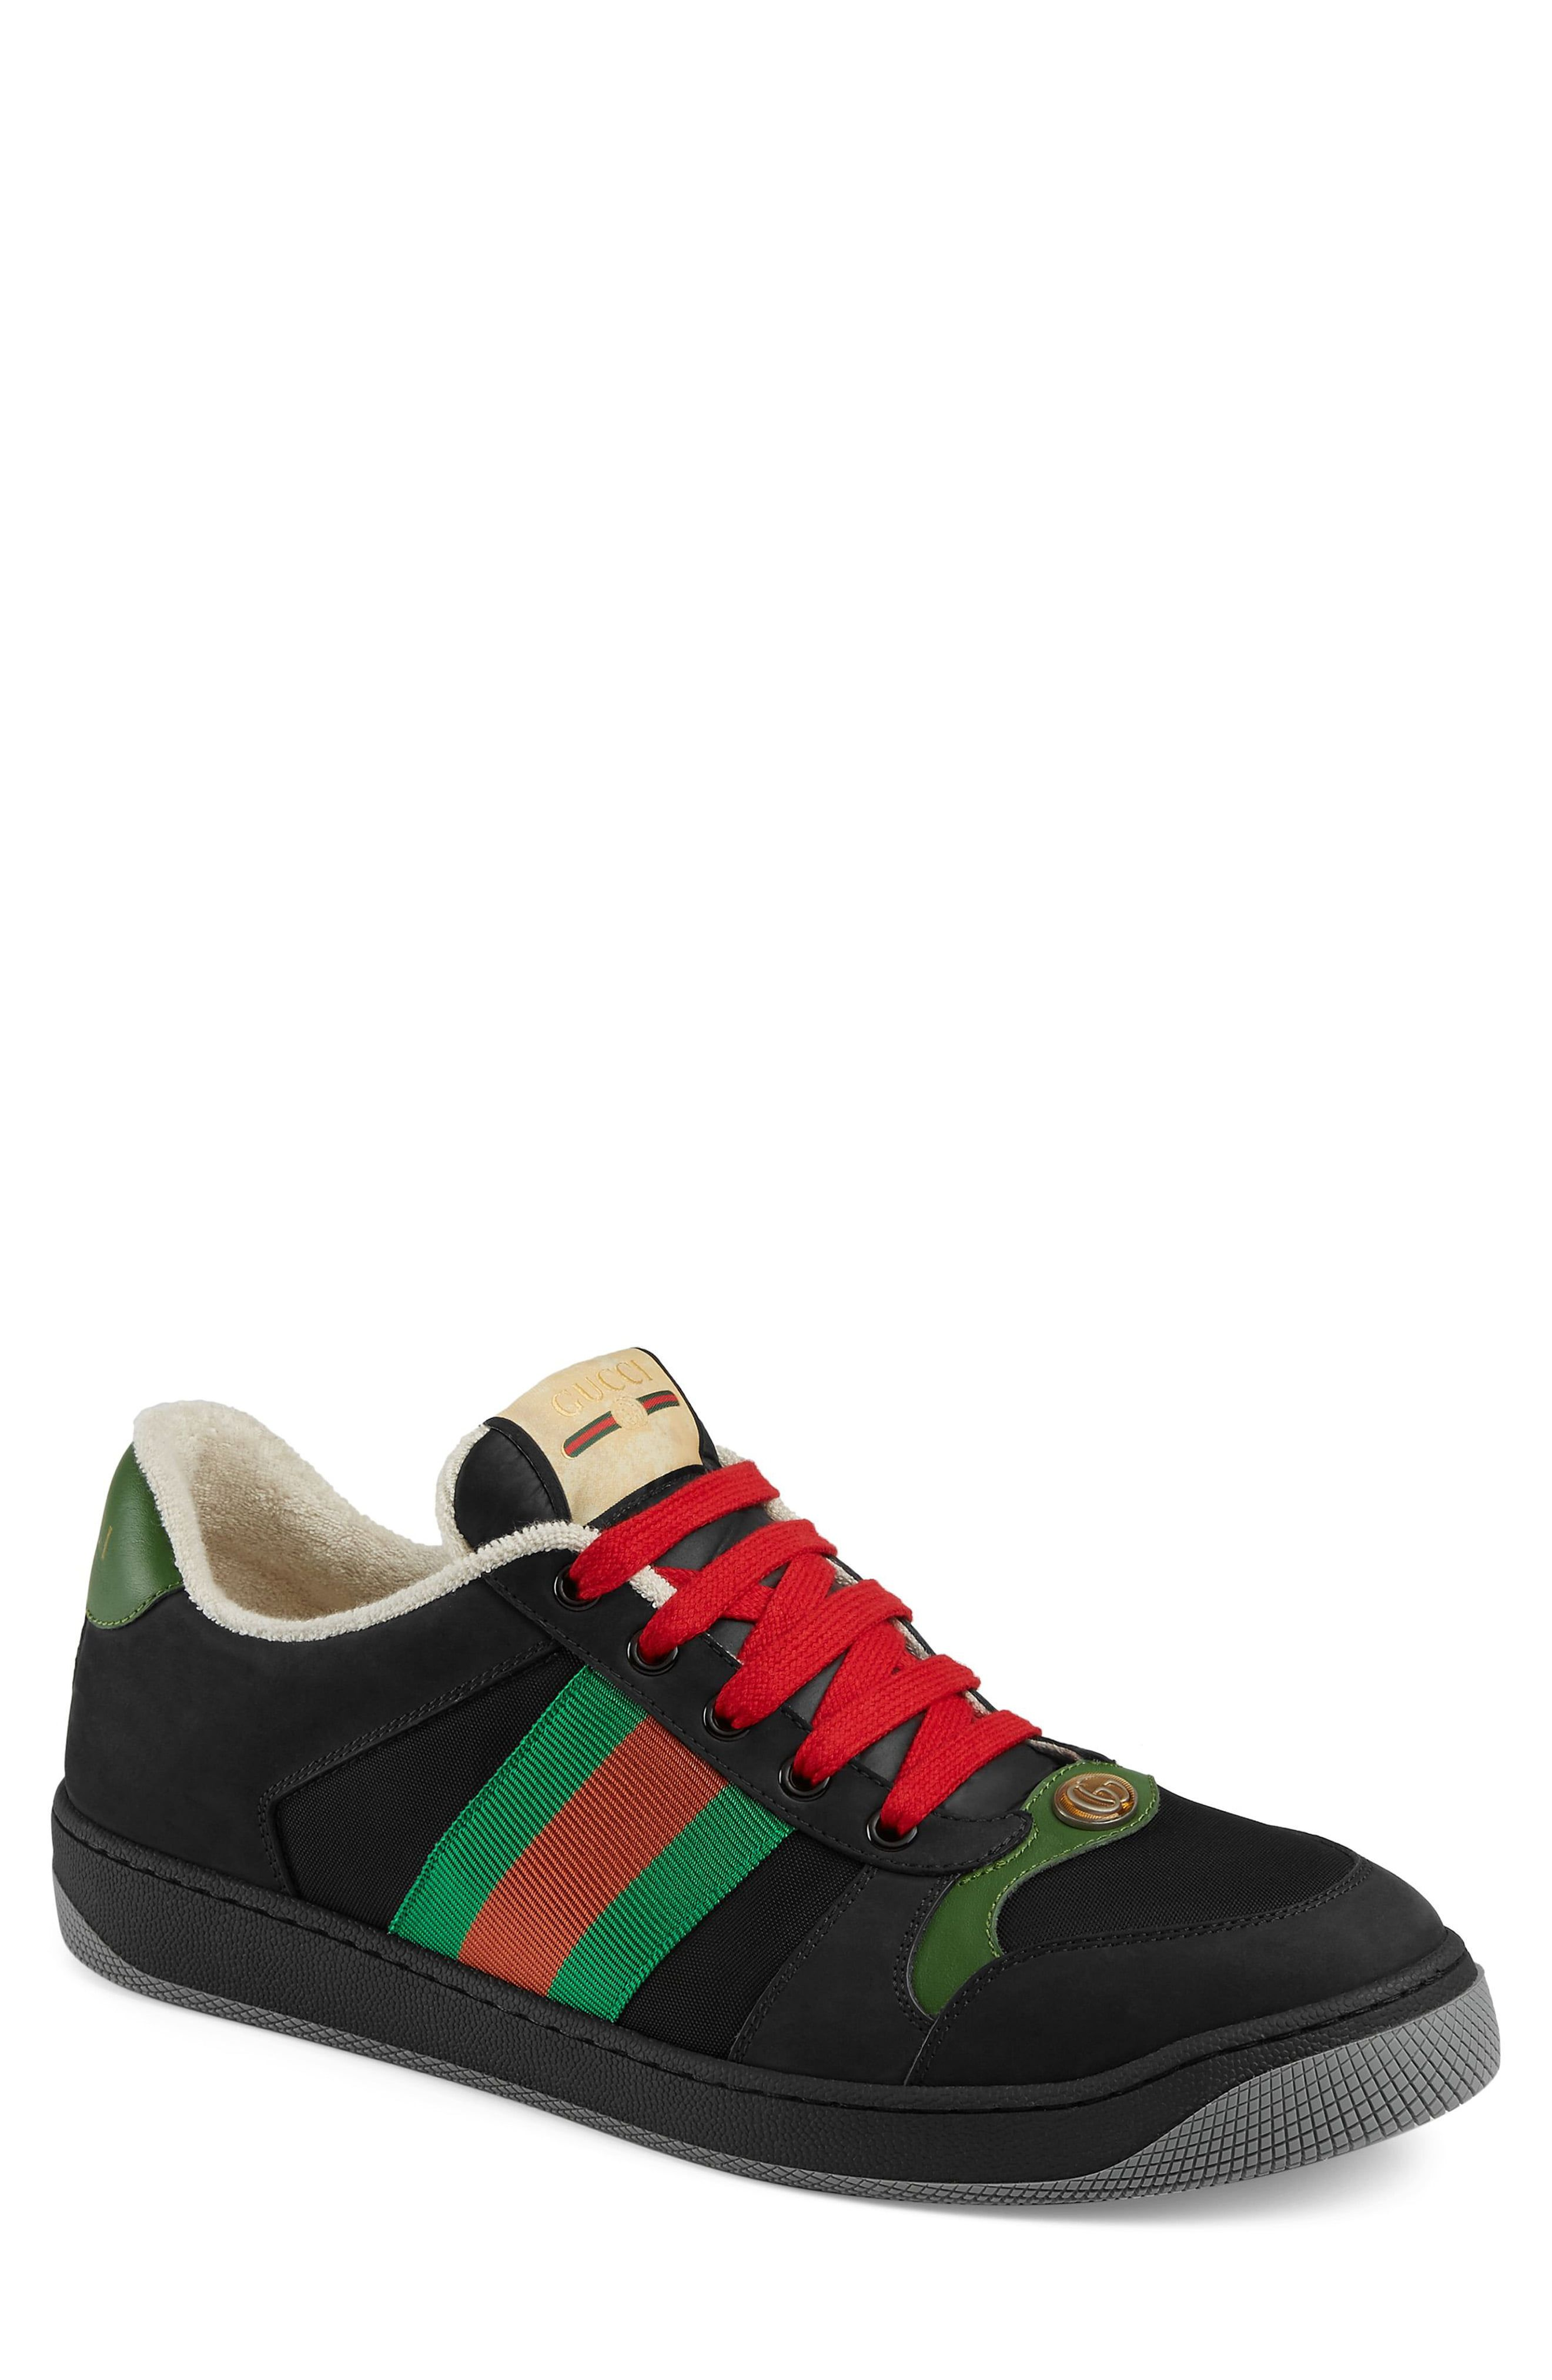 5d018dad0 Gucci Screener Low Top Sneaker in 2019 | Products | Gucci, Sneakers ...